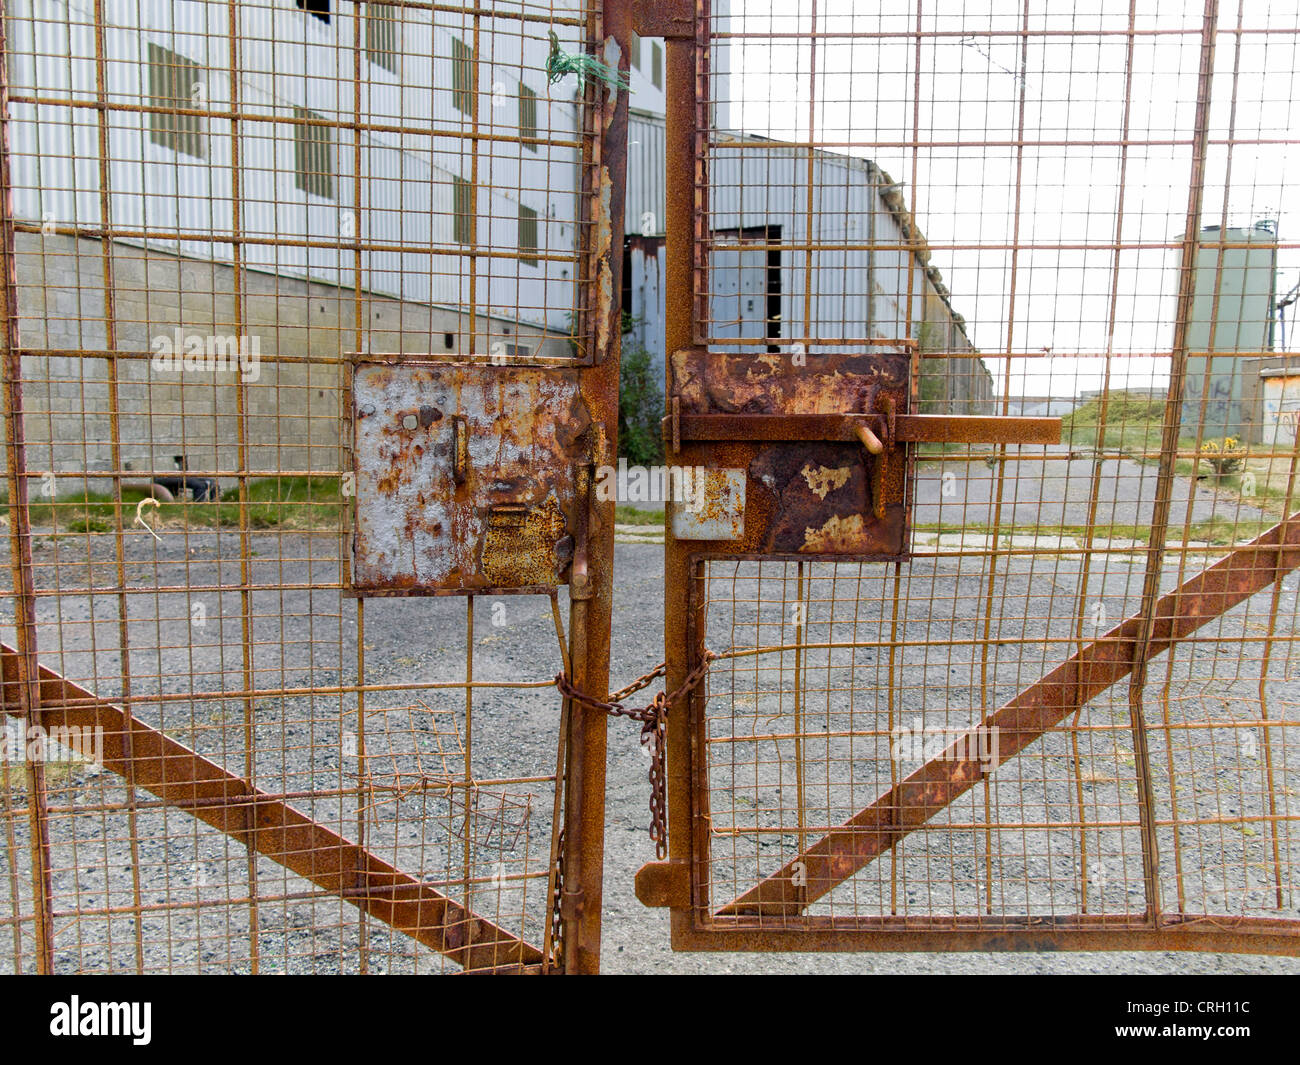 Rusted gates of a derelict run down factory closed down in Ireland - Stock Image